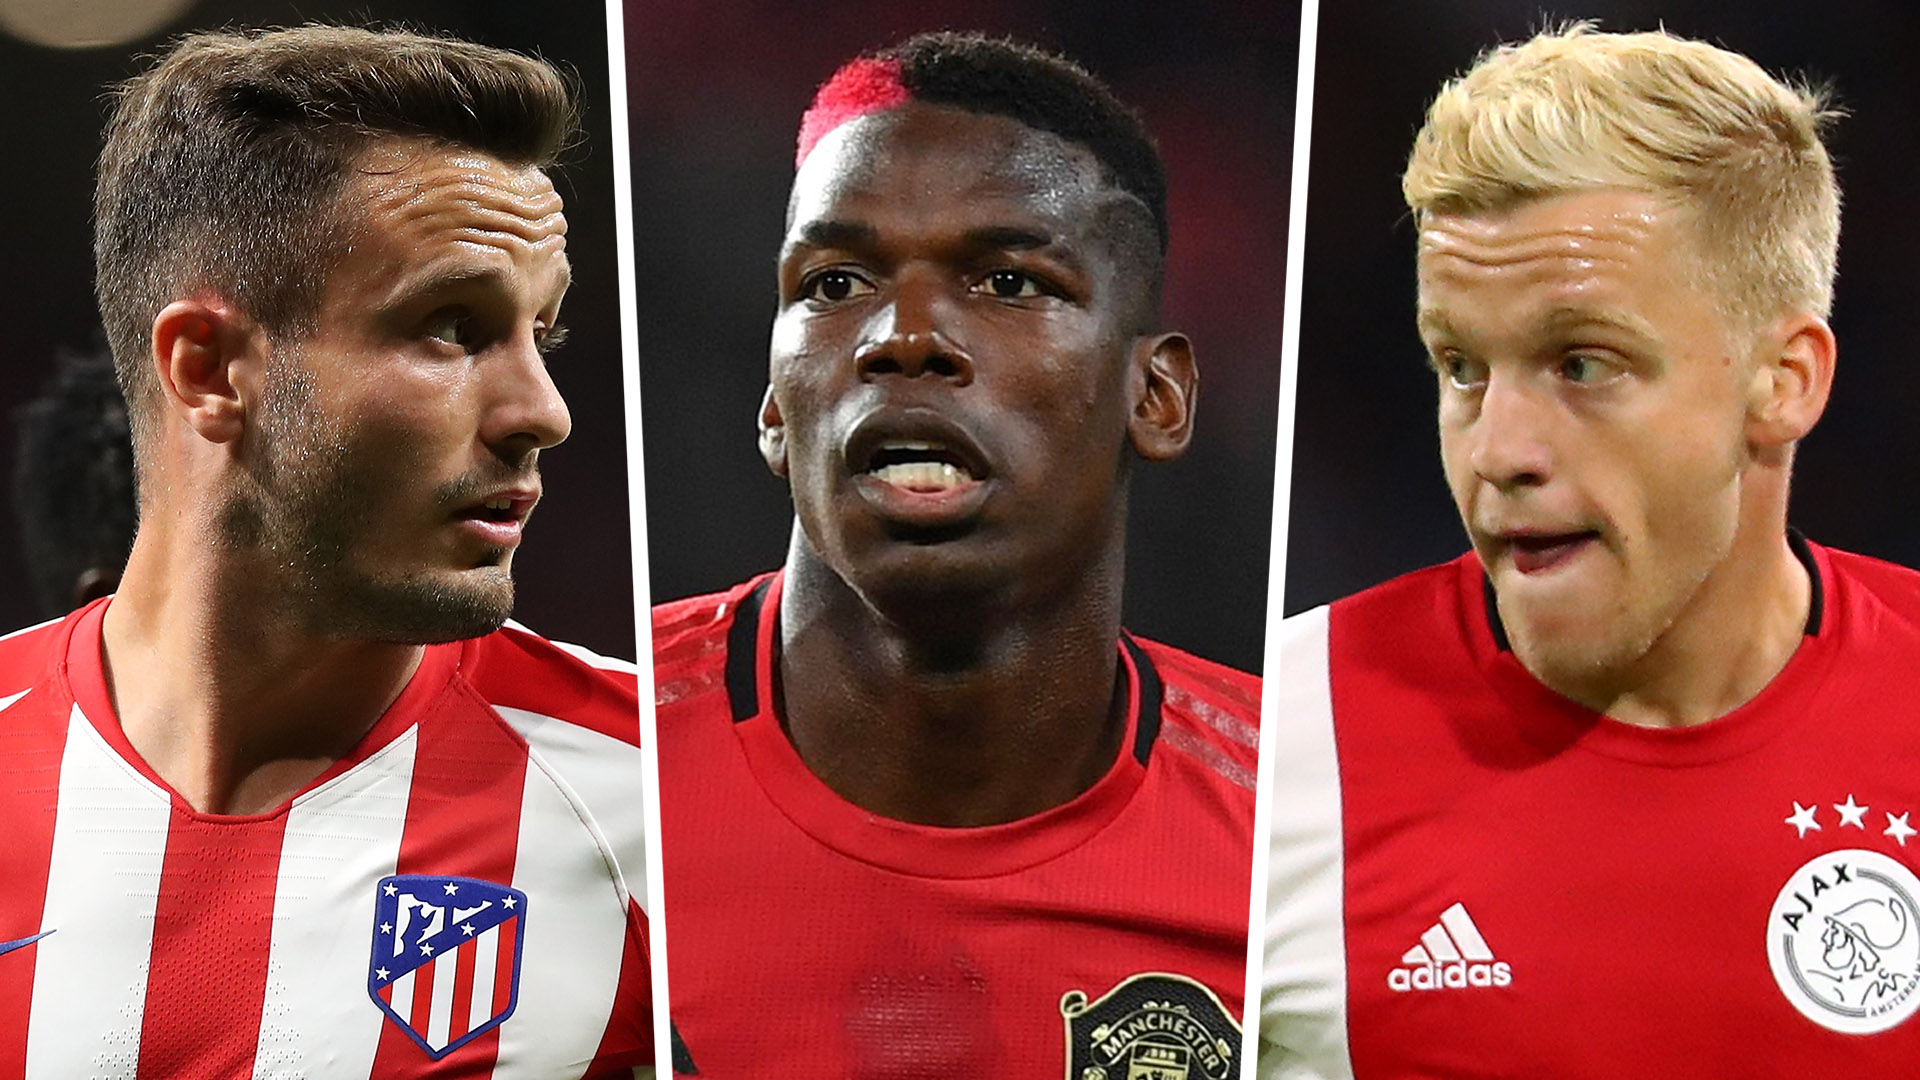 Transfer News And Rumours Live Pogba Clear To Leave As Man Utd Eye Van De Beek Saul As Replacements Goal Com